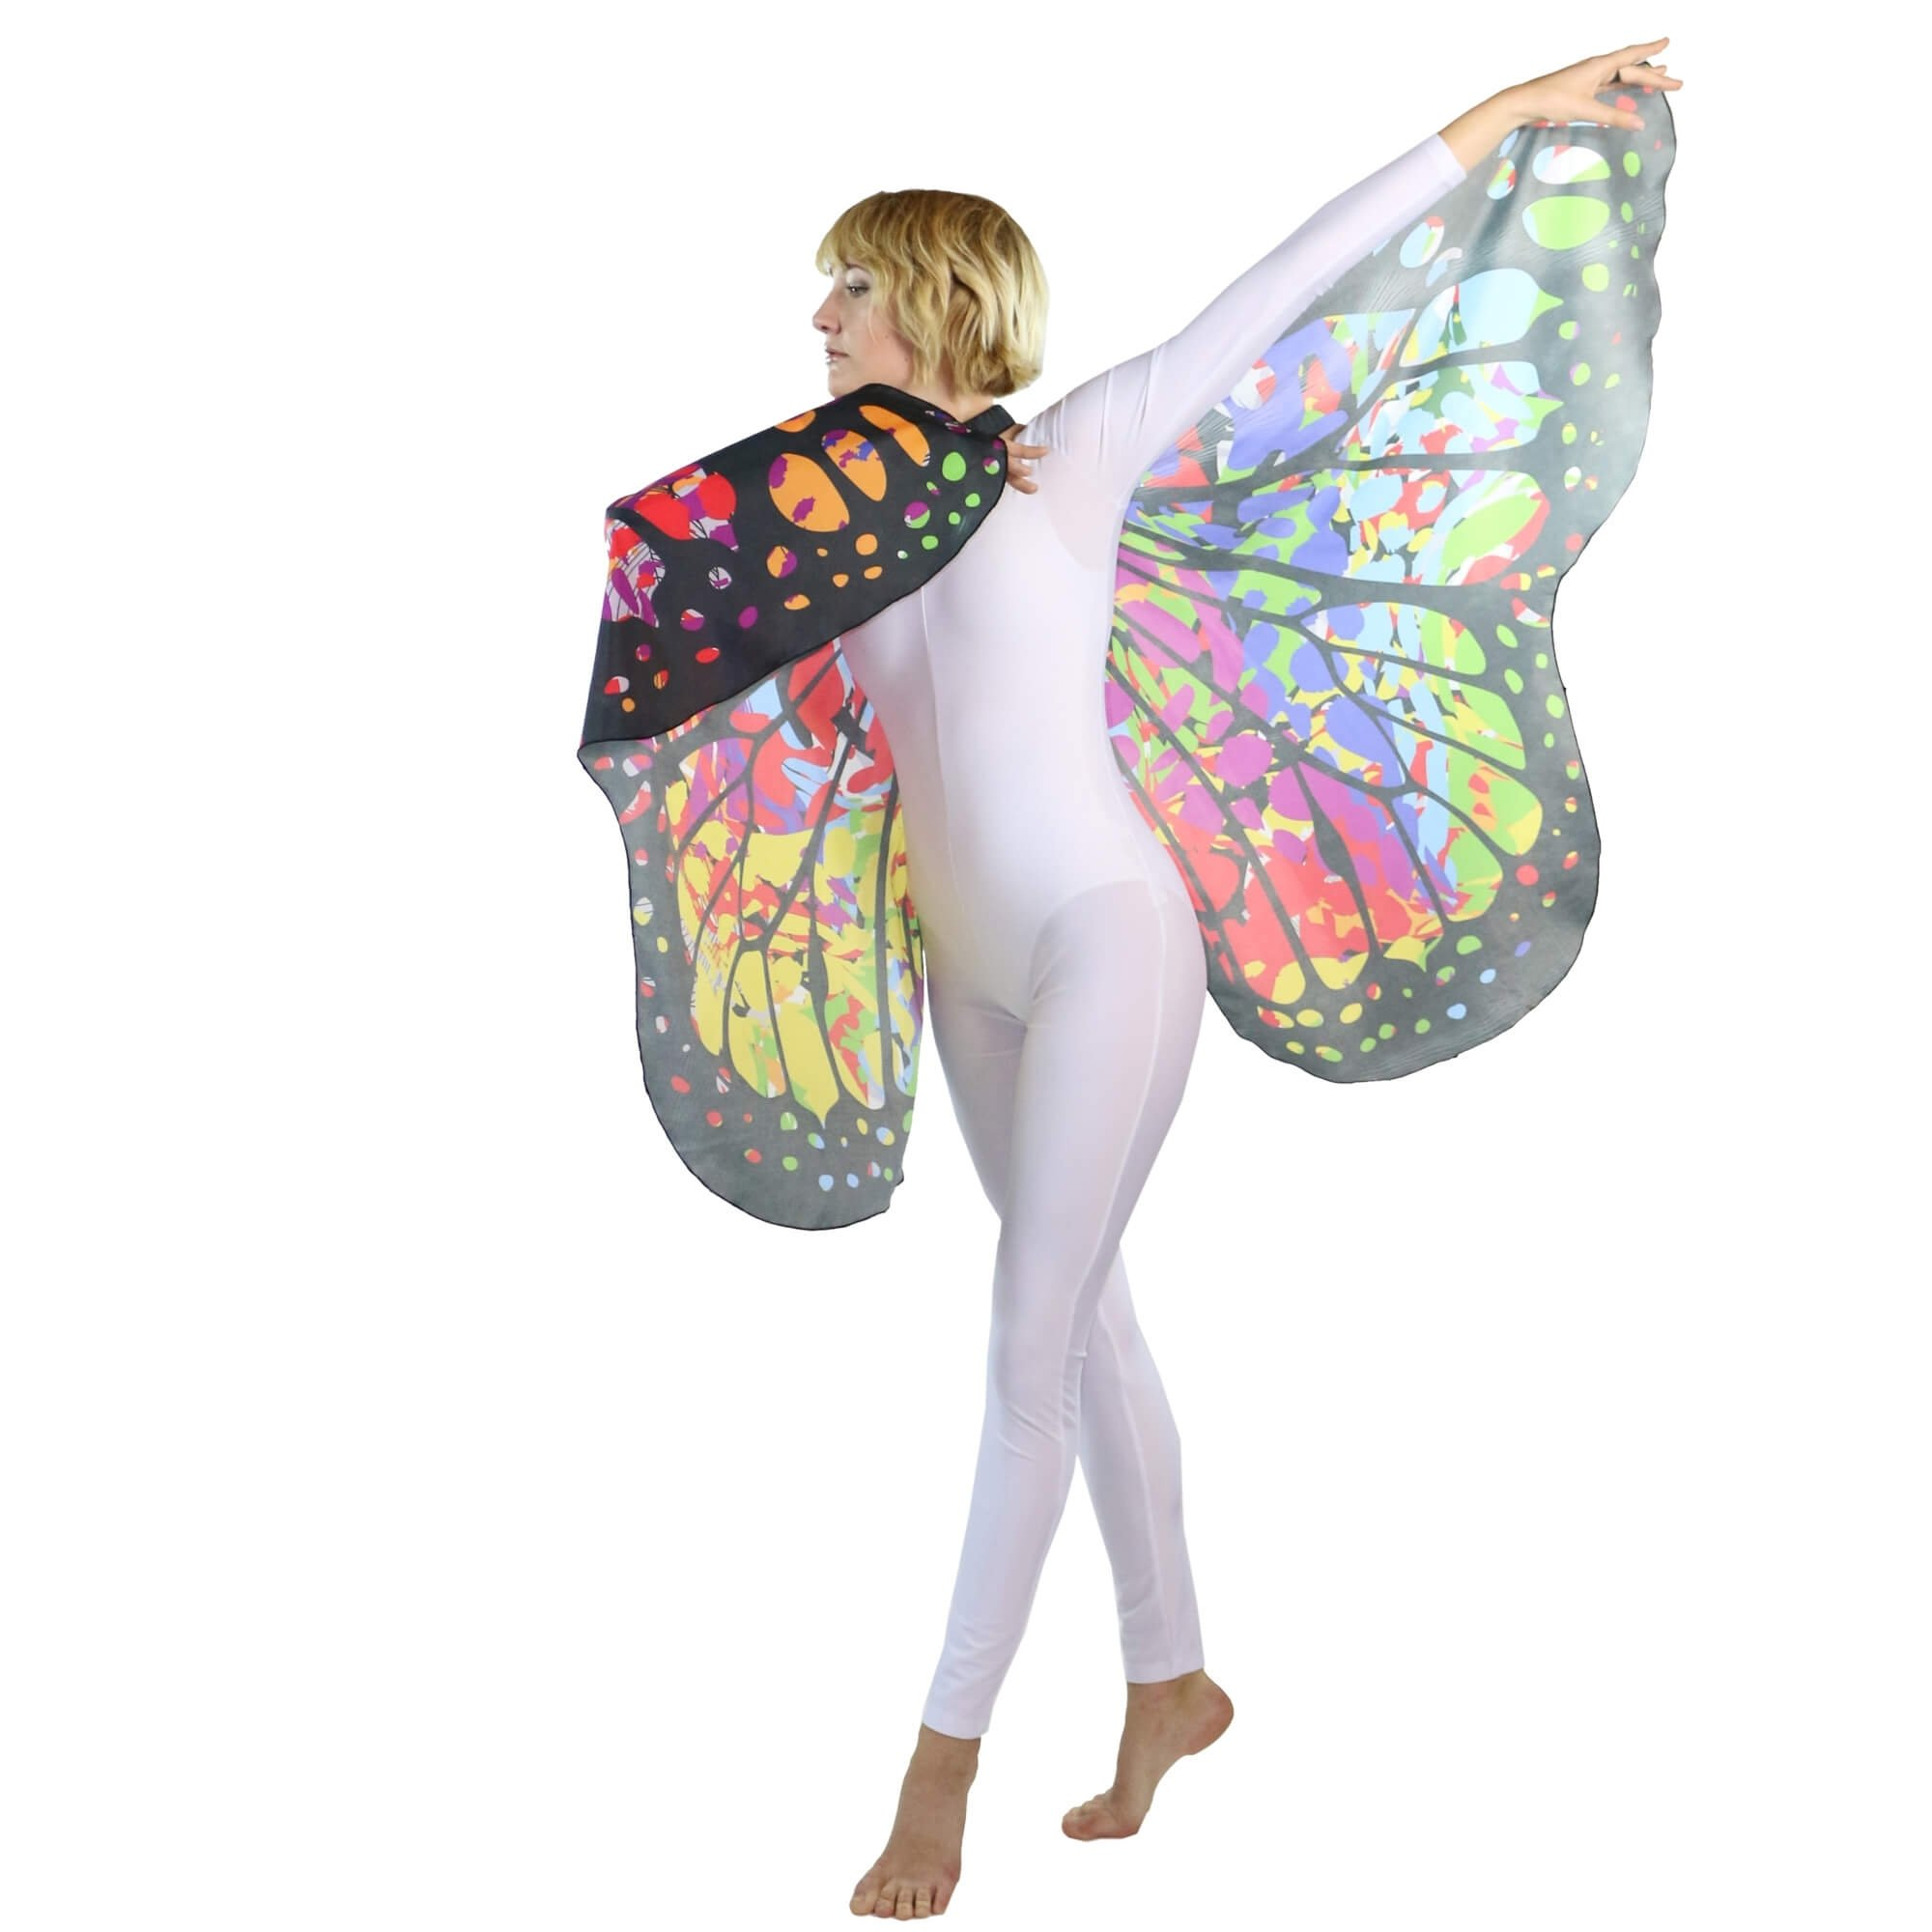 Danzcue Soft Colorful Butterfly Dance Wings - Click Image to Close